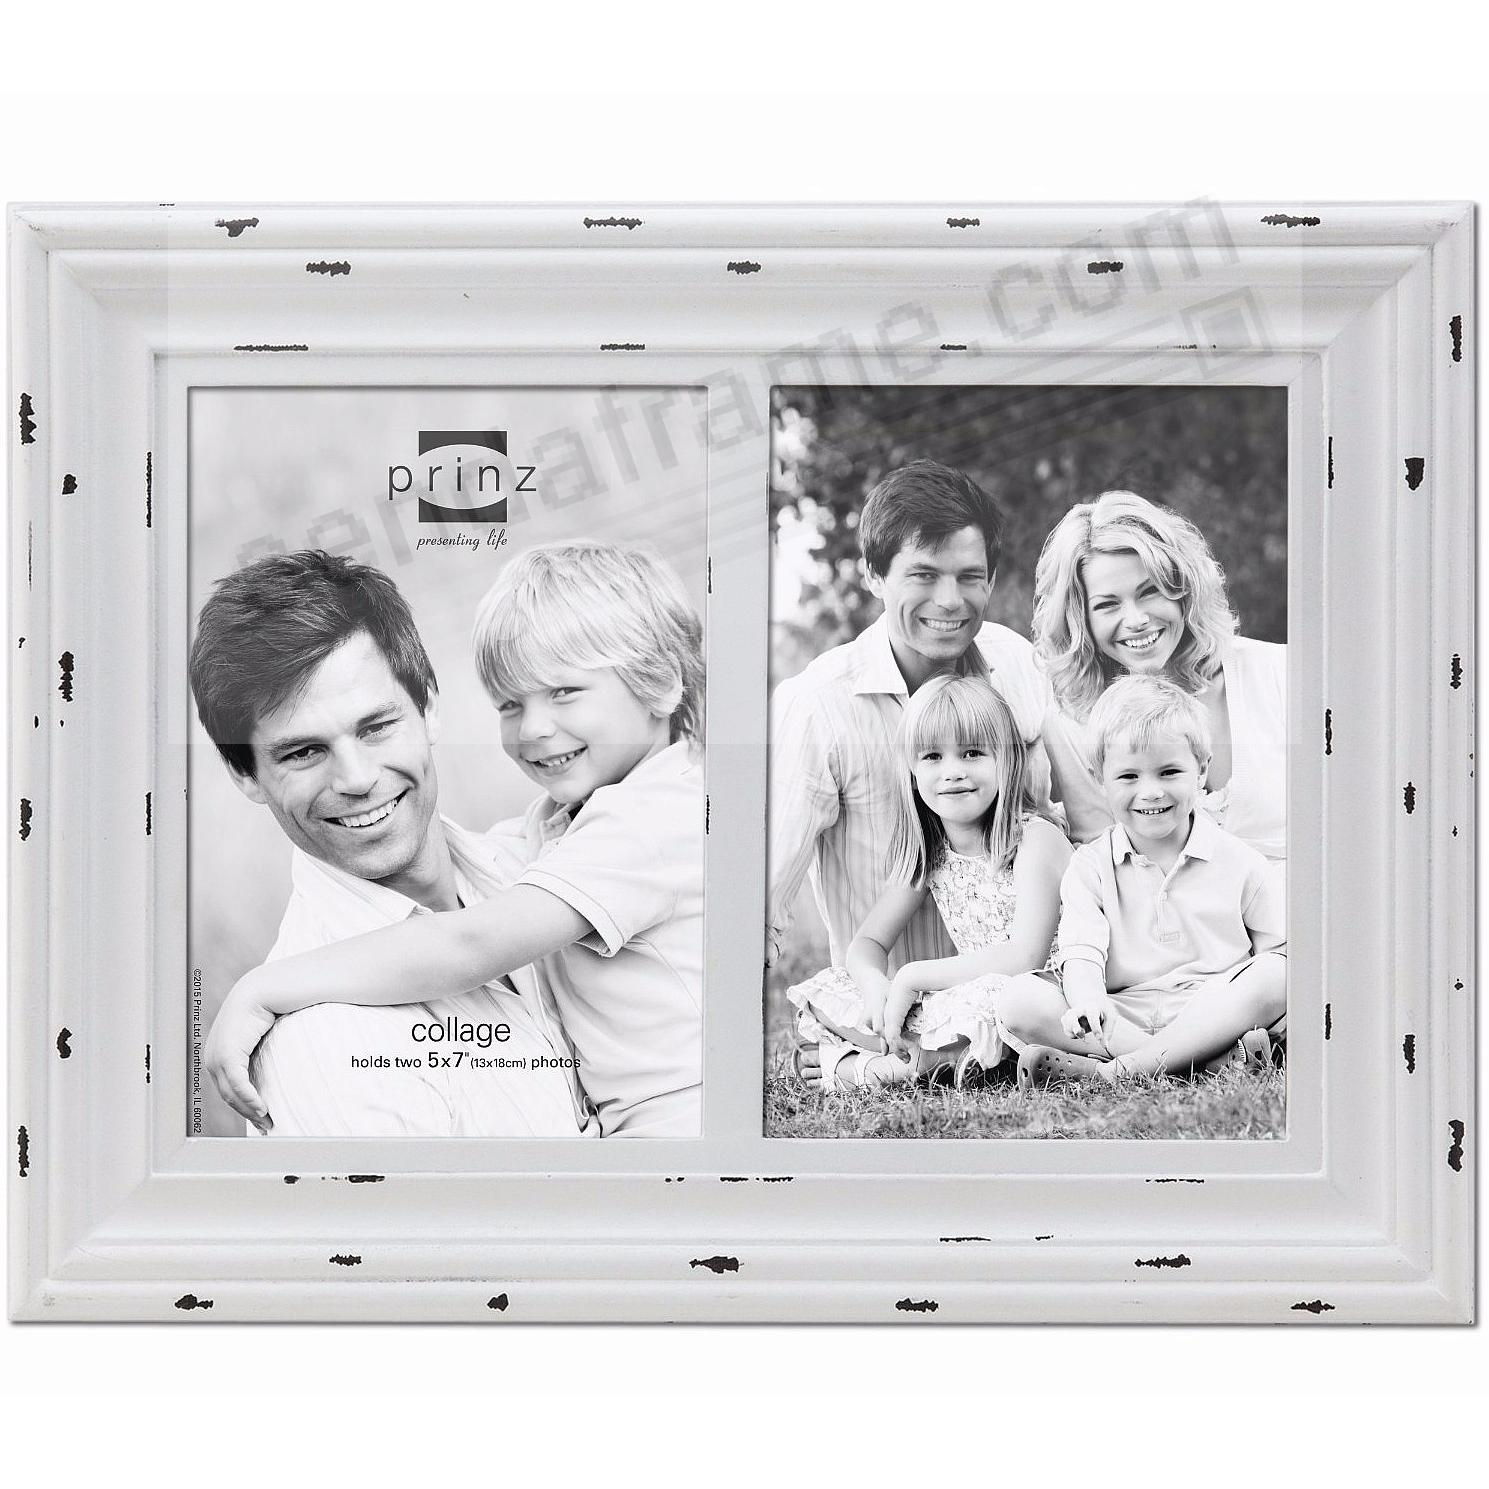 Carson distressed white wood float double 5x7 frame by prinz usa carson distressed white wood float double 5x7 frame by prinz usa jeuxipadfo Choice Image